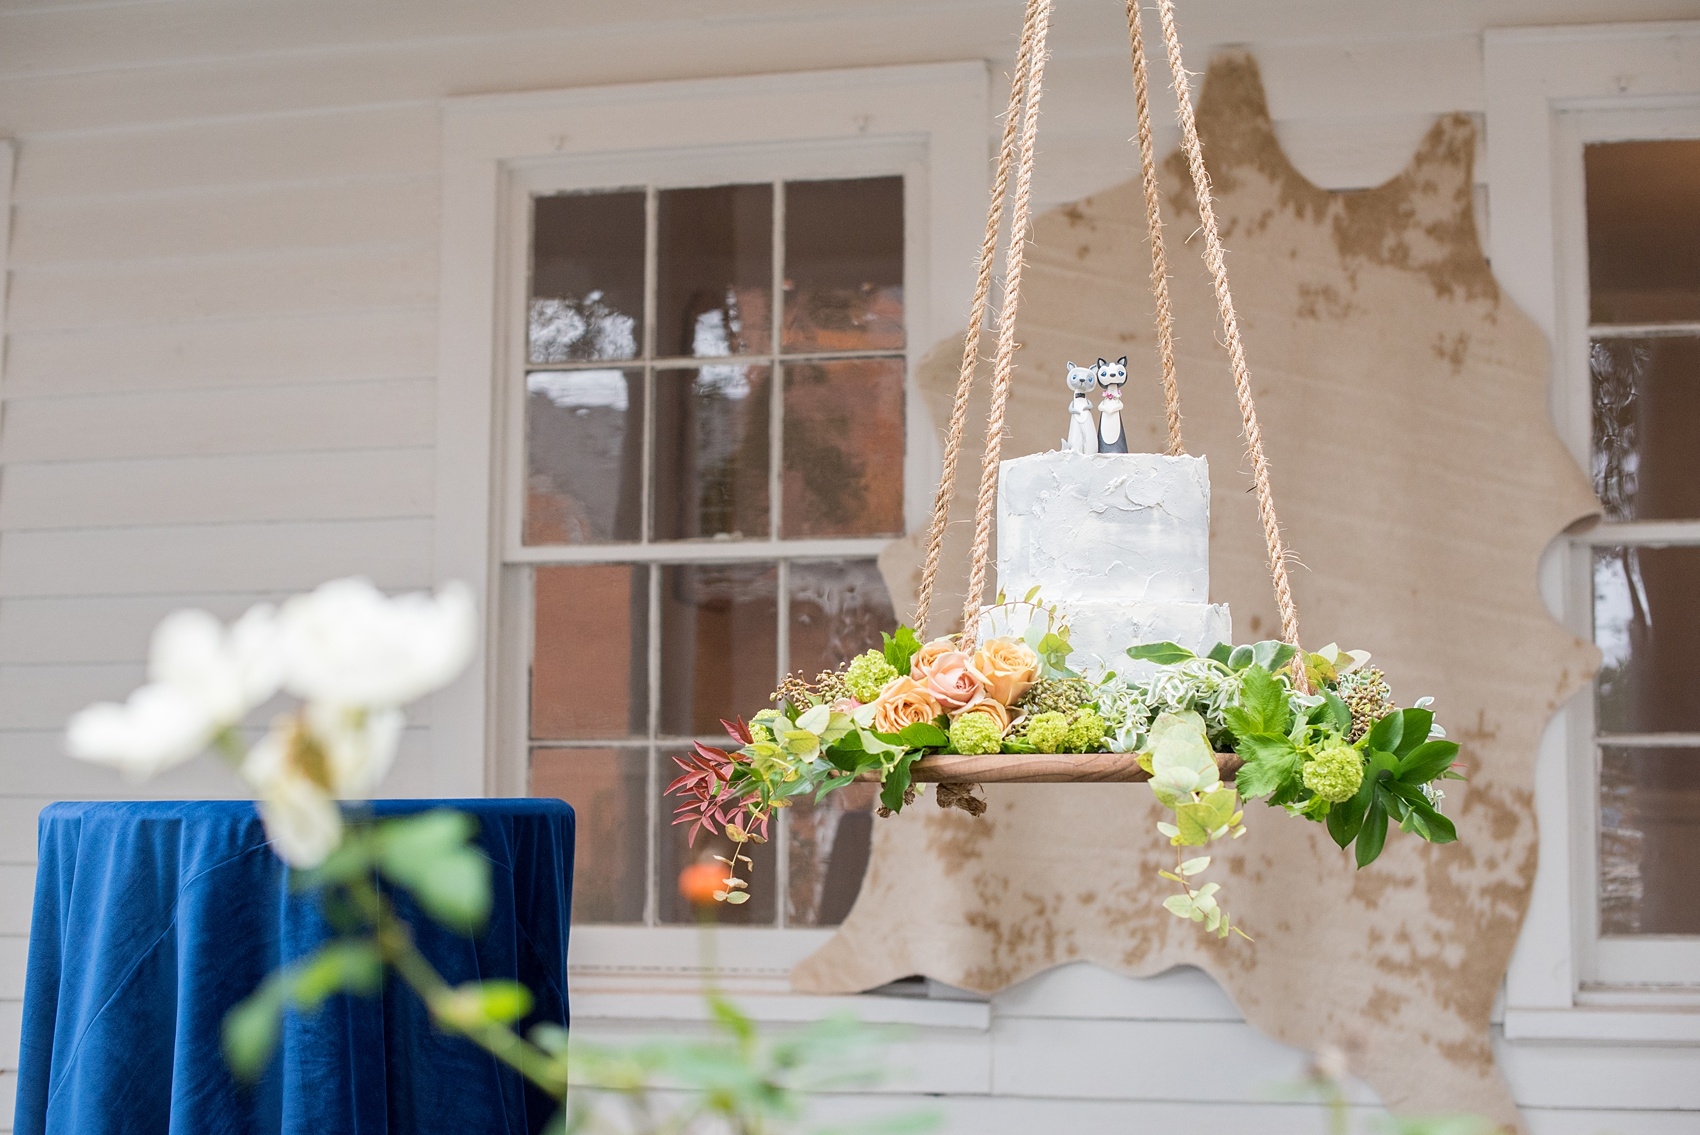 Mikkel Paige Photography photos from a wedding at Leslie-Alford Mims House in North Carolina. Picture of the concrete cake with clay animal cake topper, suspended from the venue on a rope display adorned with flowers.